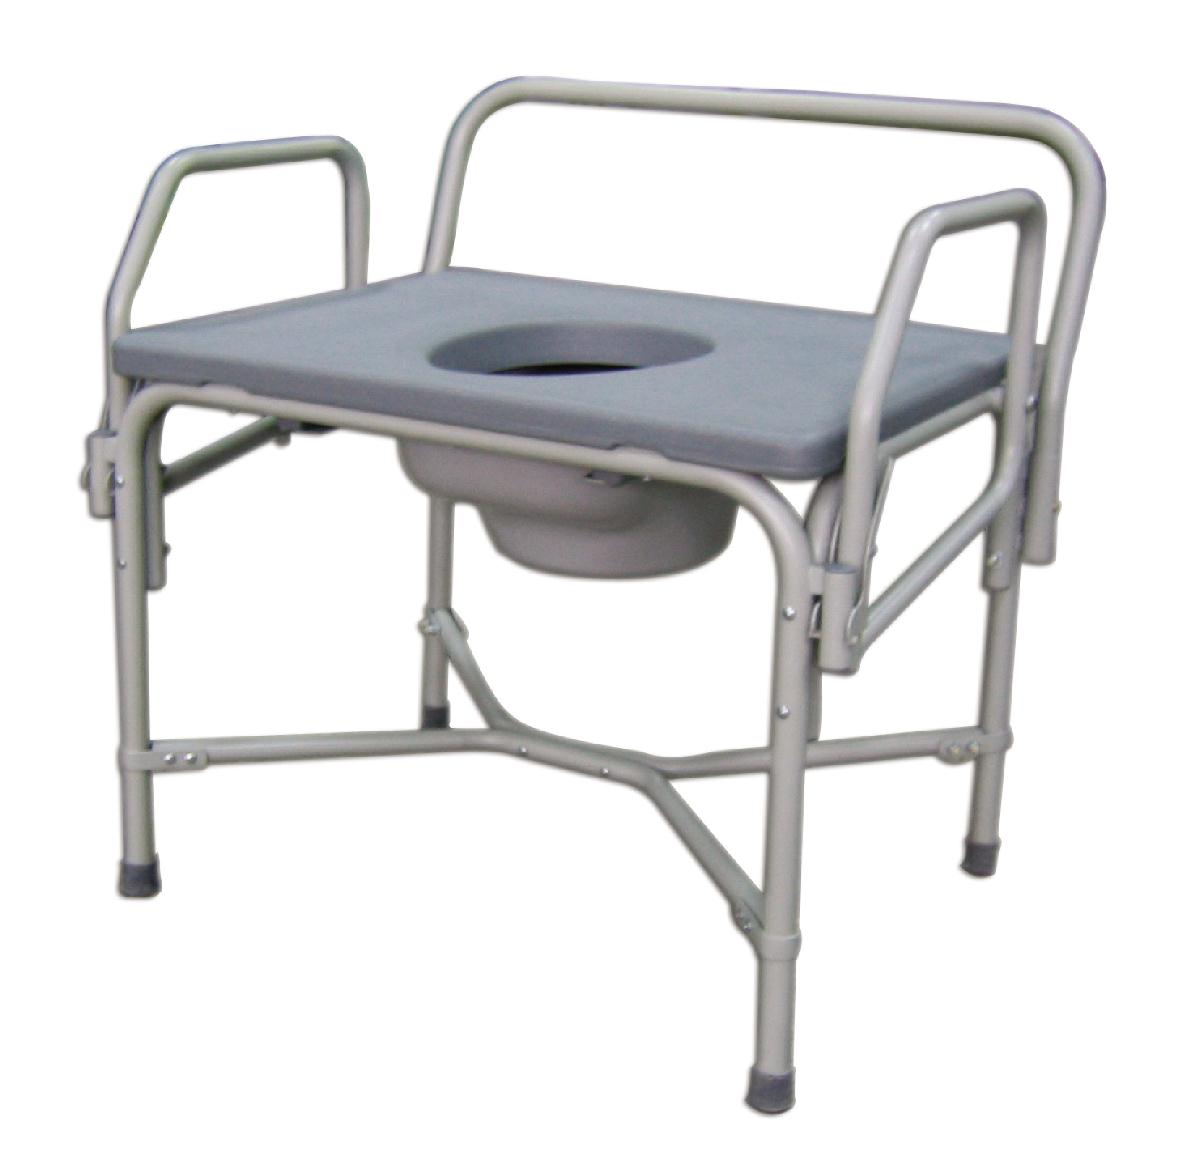 Bariatric Drop-Arm Commode, COMMODE,DROP ARM,850LBS CAP PF04649